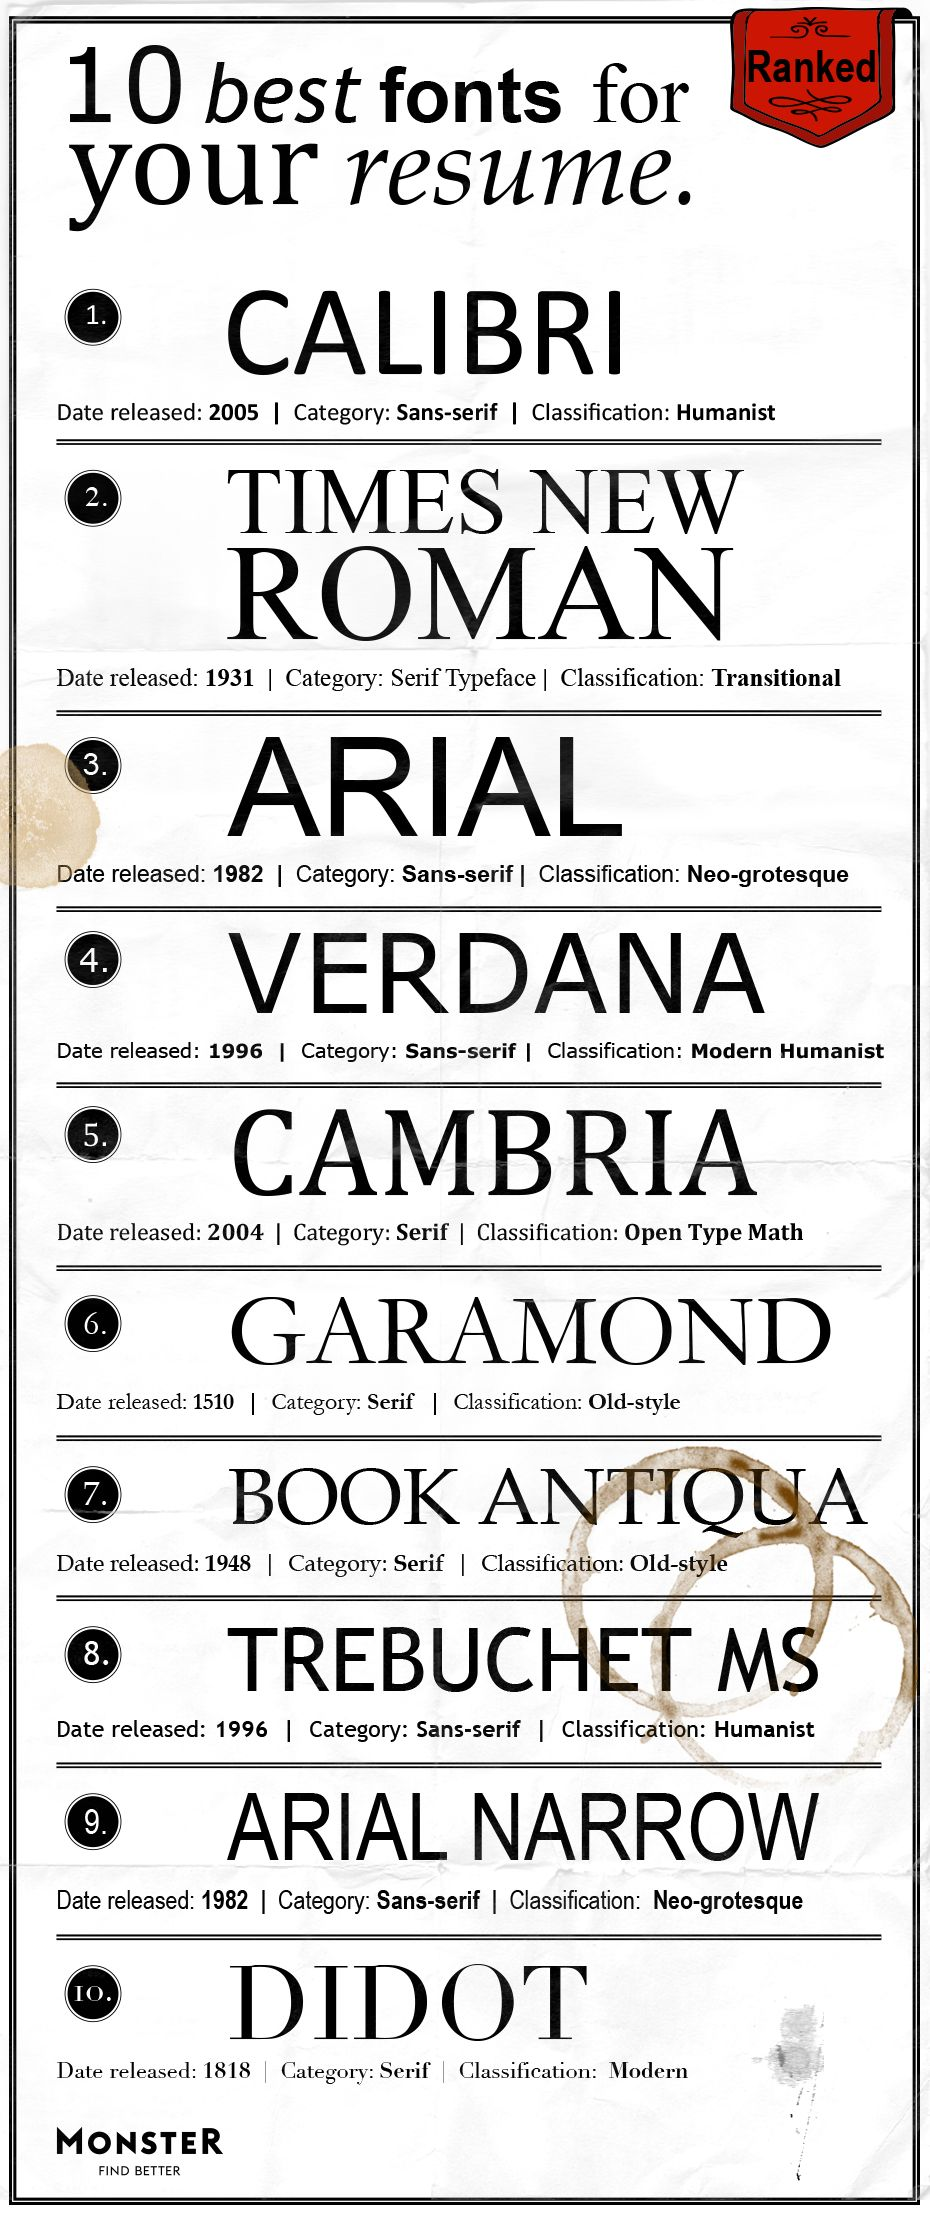 The best fonts for your resume ranked | Resume Tips | Pinterest ...